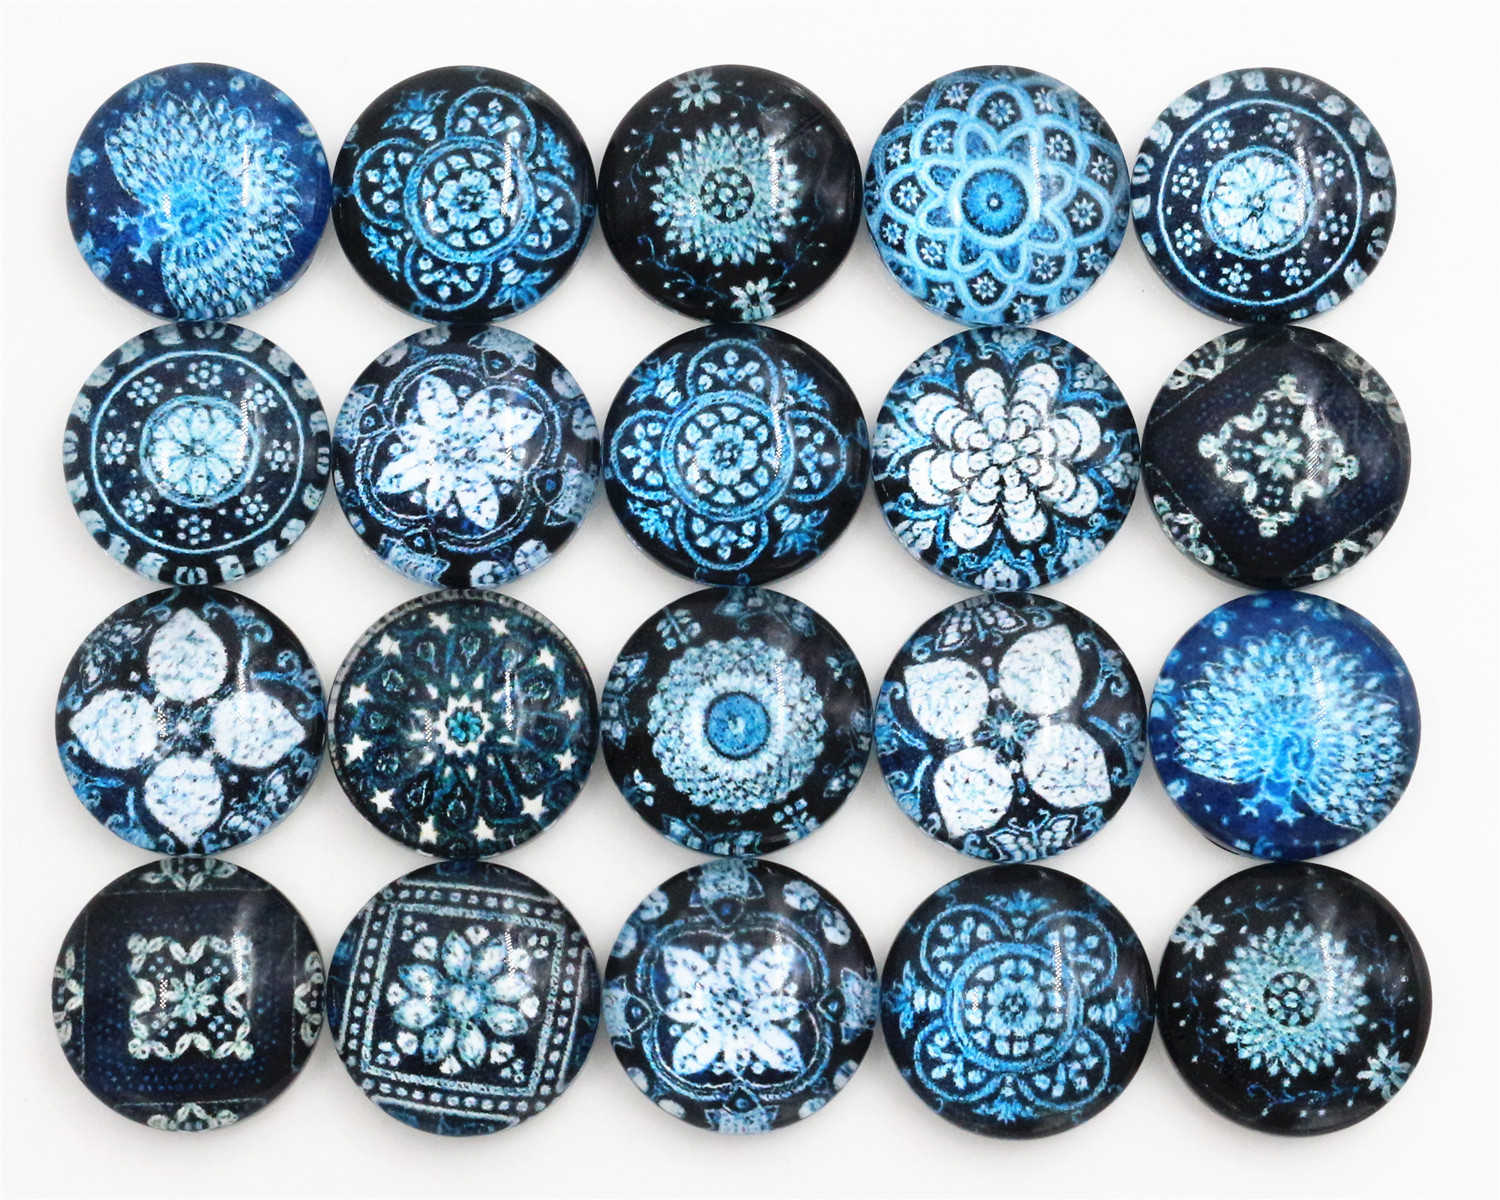 50pcs/Lot 12mm Photo Glass Cabochons Mixed Color Cabochons For Bracelet Earrings Necklace Bases Settings-C4-13